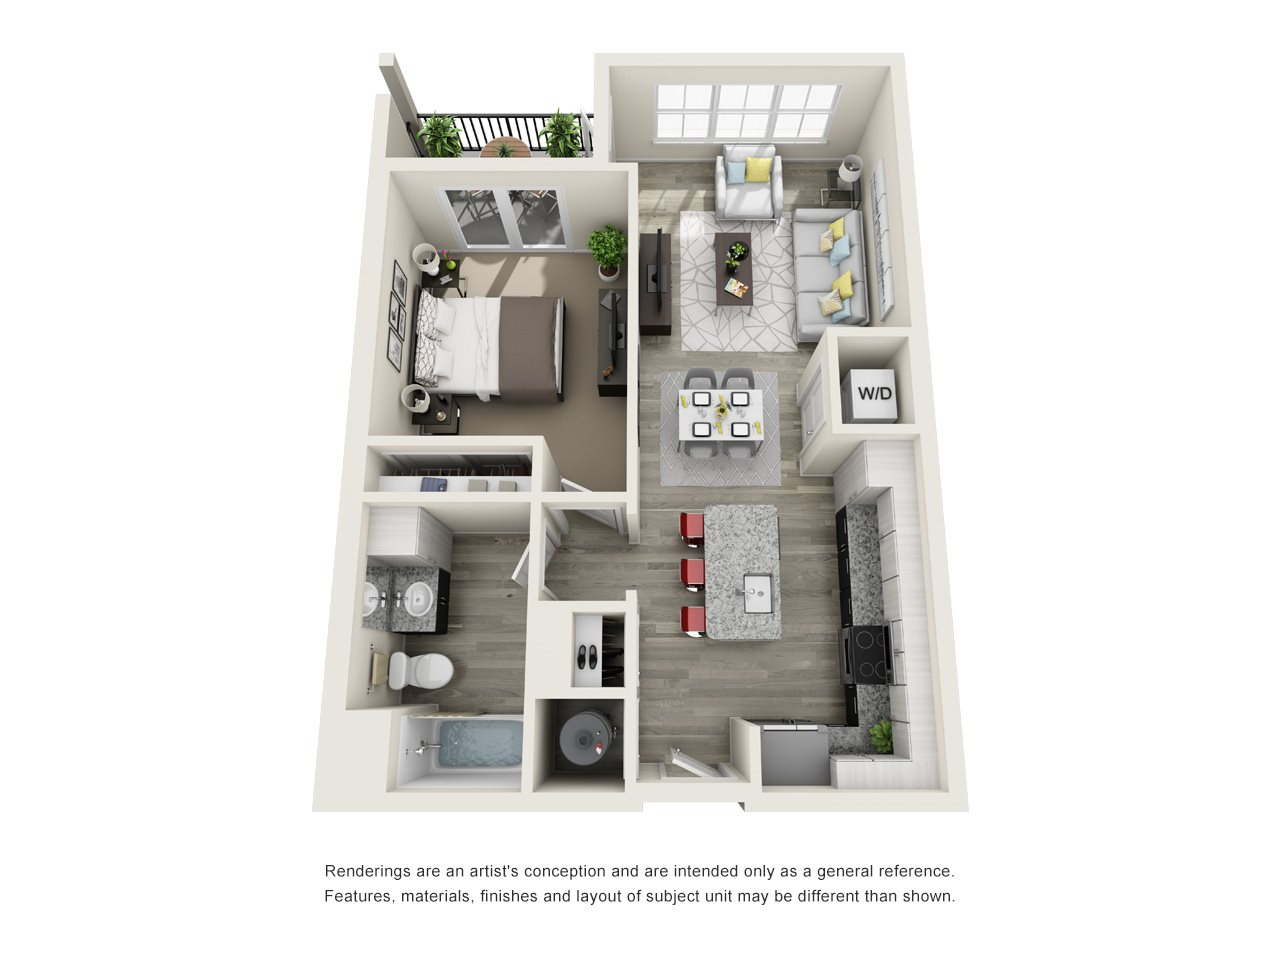 1 Bedroom, 1 Bath 736 sqft Floor Plan 7